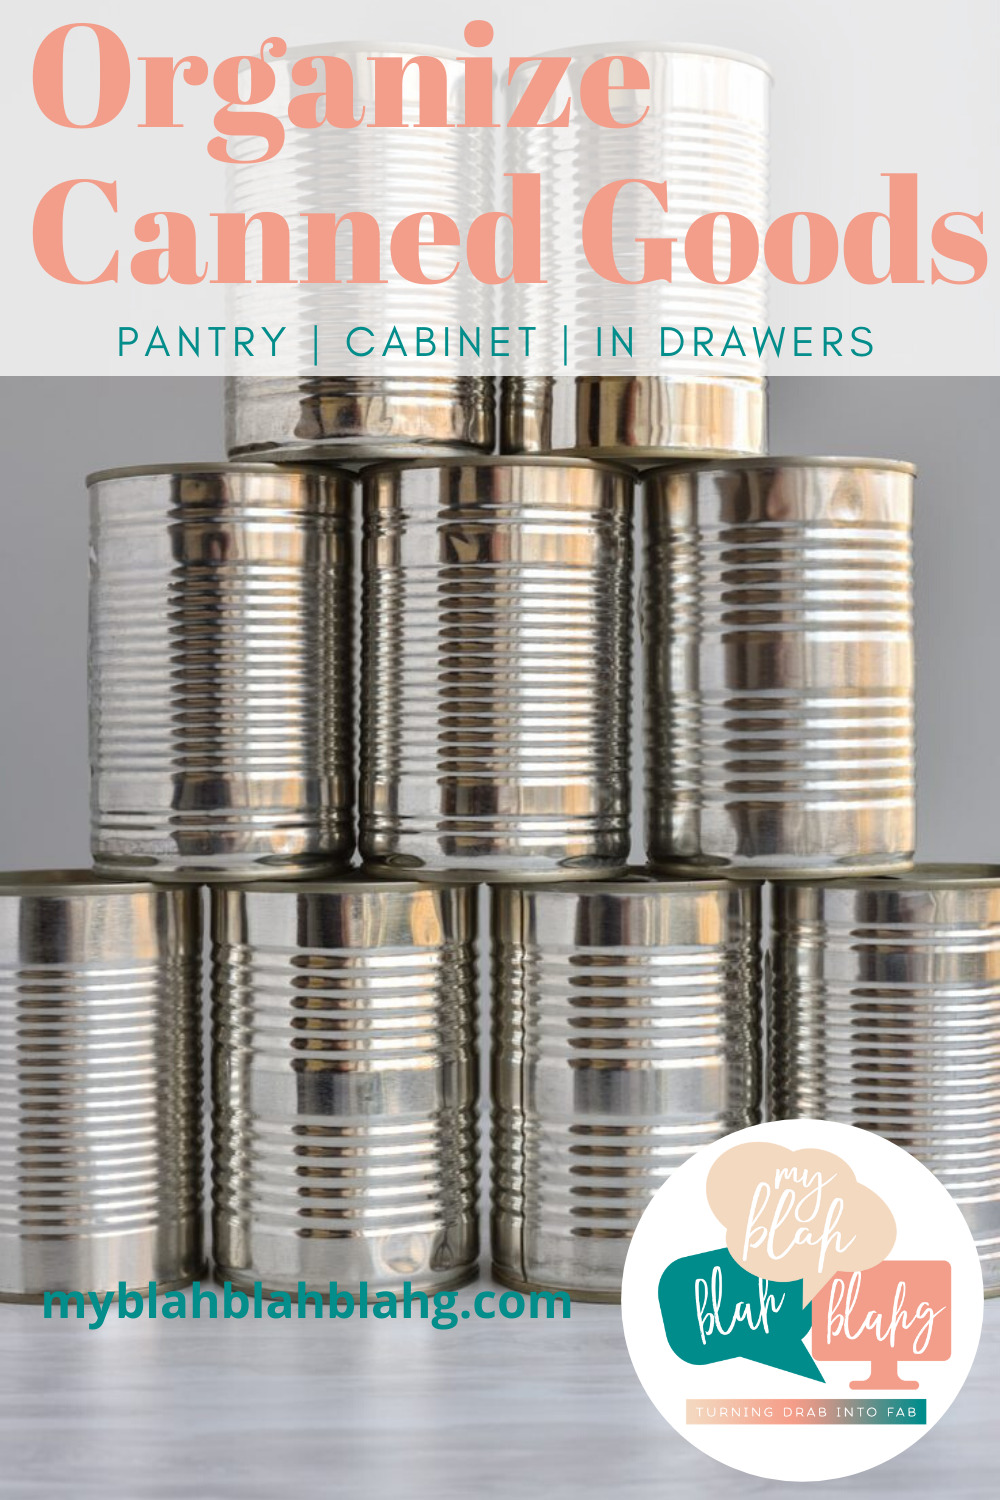 Organize canned goods once and for all with these ideas. Ways to use drawers, shelves, bins or boxes to help you take control. #myblahblahblahgblog #organizedcannedgoods